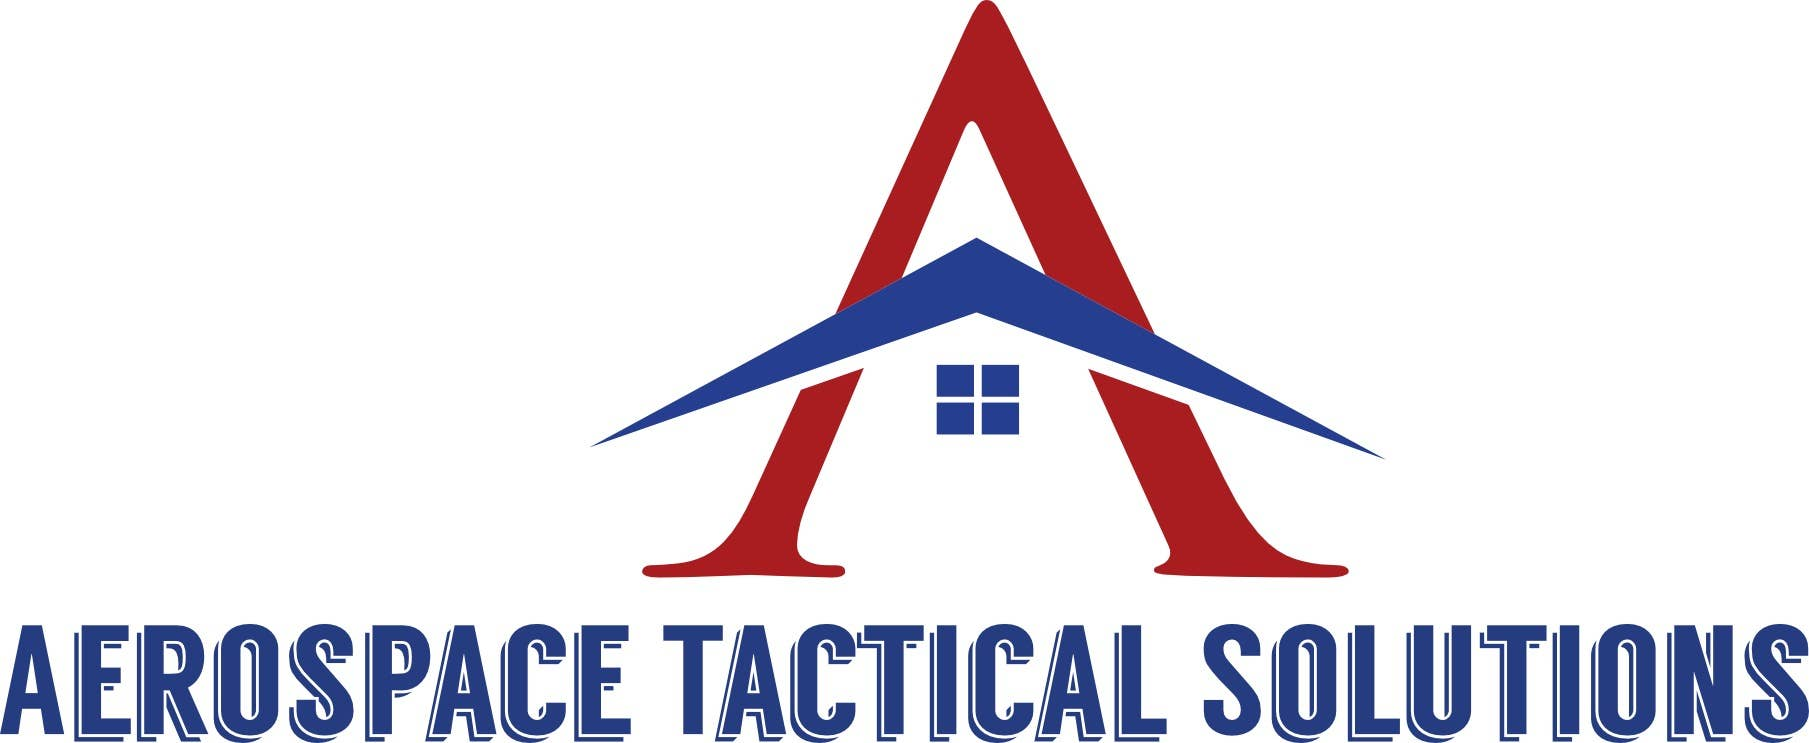 AEROSPACE TACTICAL SOLUTIONS LLC